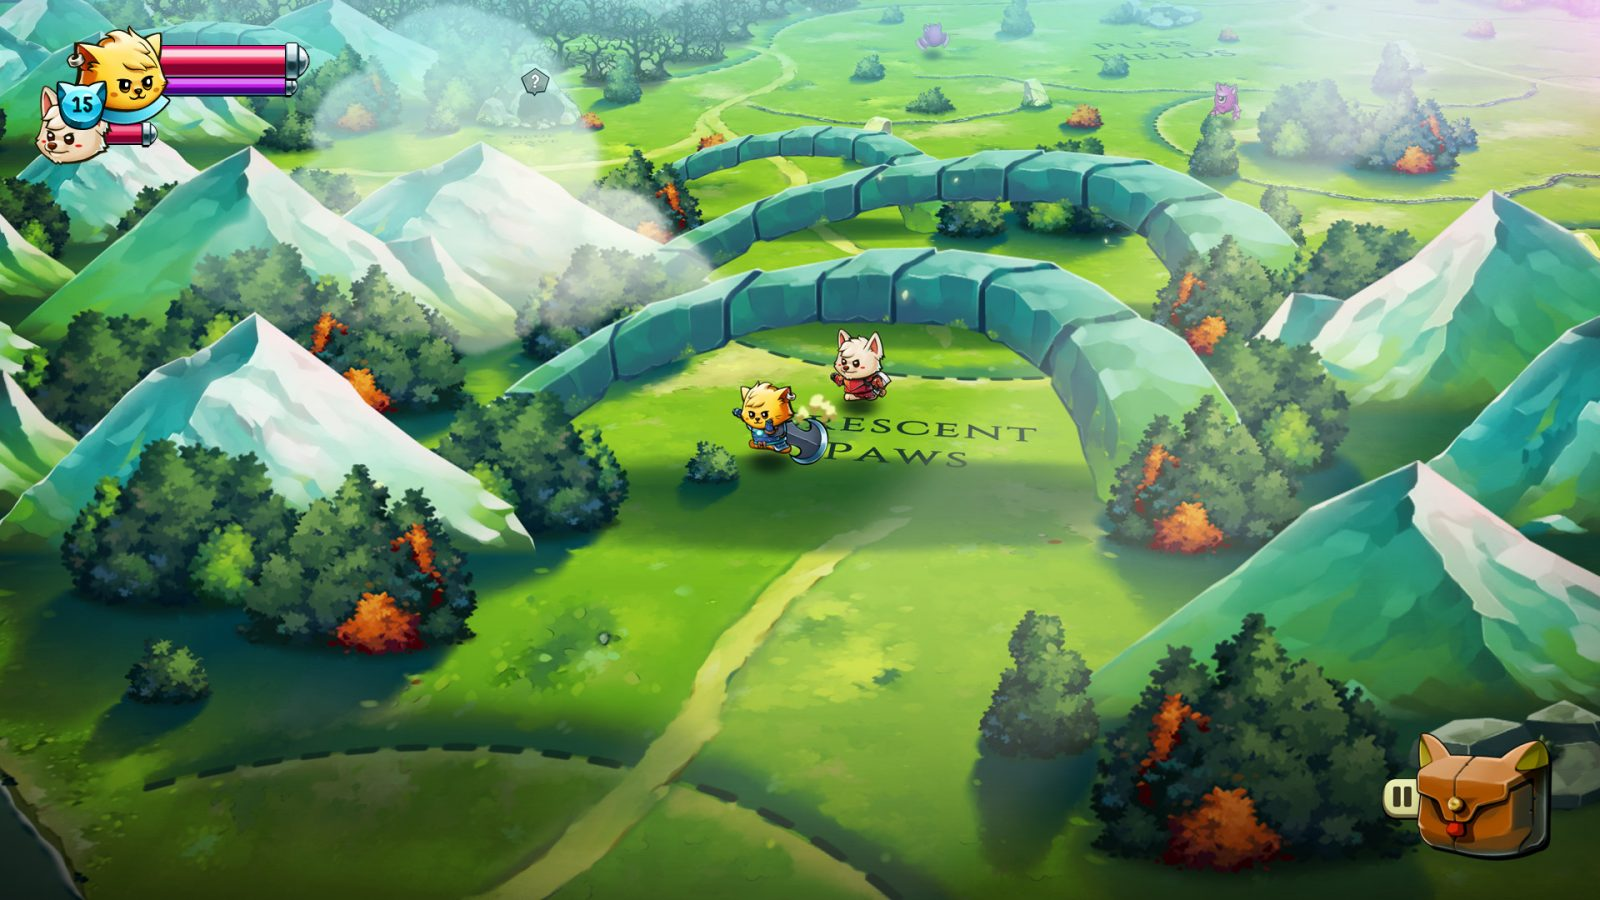 New Overview Trailer for Cat Quest II